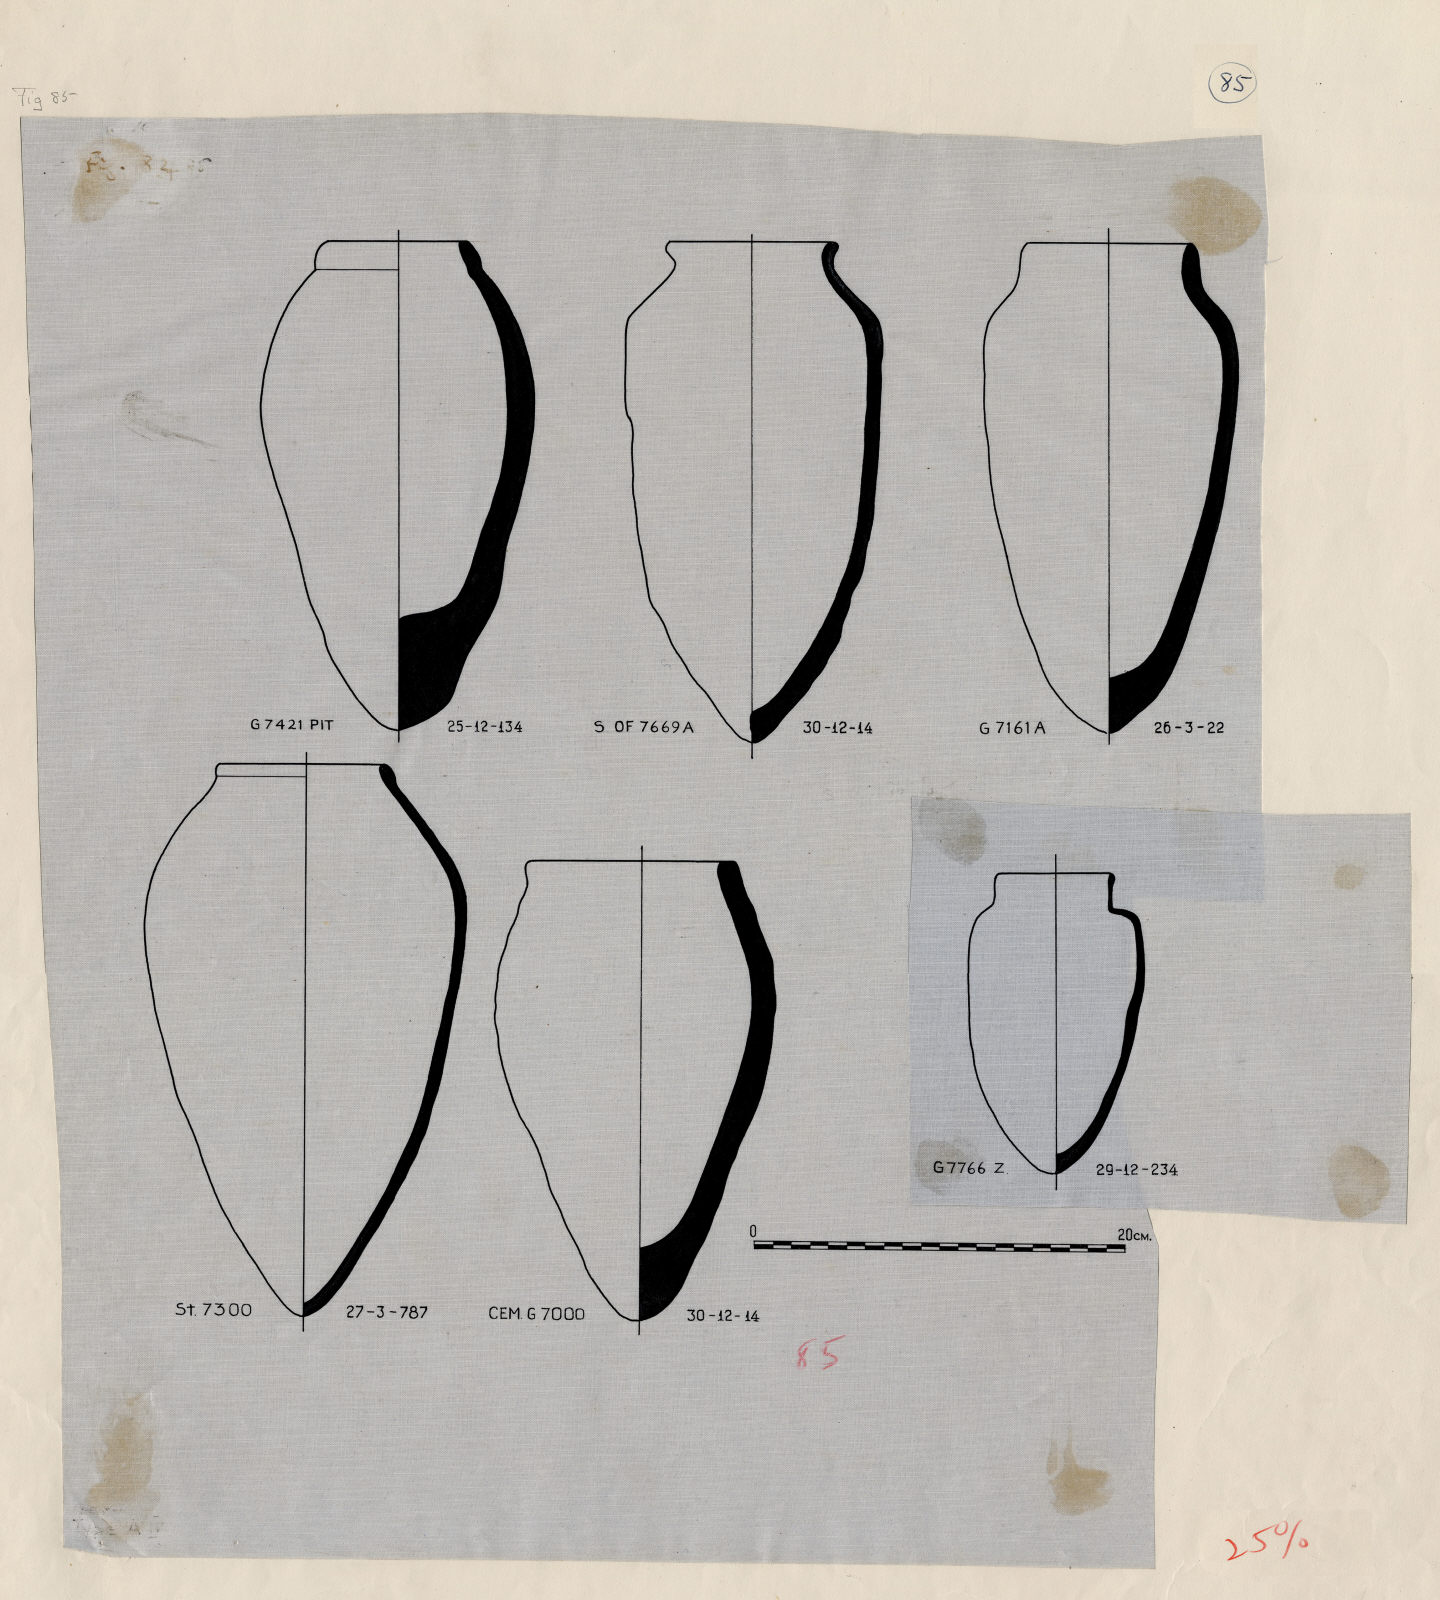 Drawings: Pottery from G 7421; G 7161, Shaft A; G 7766, Shaft Z; Street G 7300; SW of G 7769 A (labeled Cemetery G 7000)